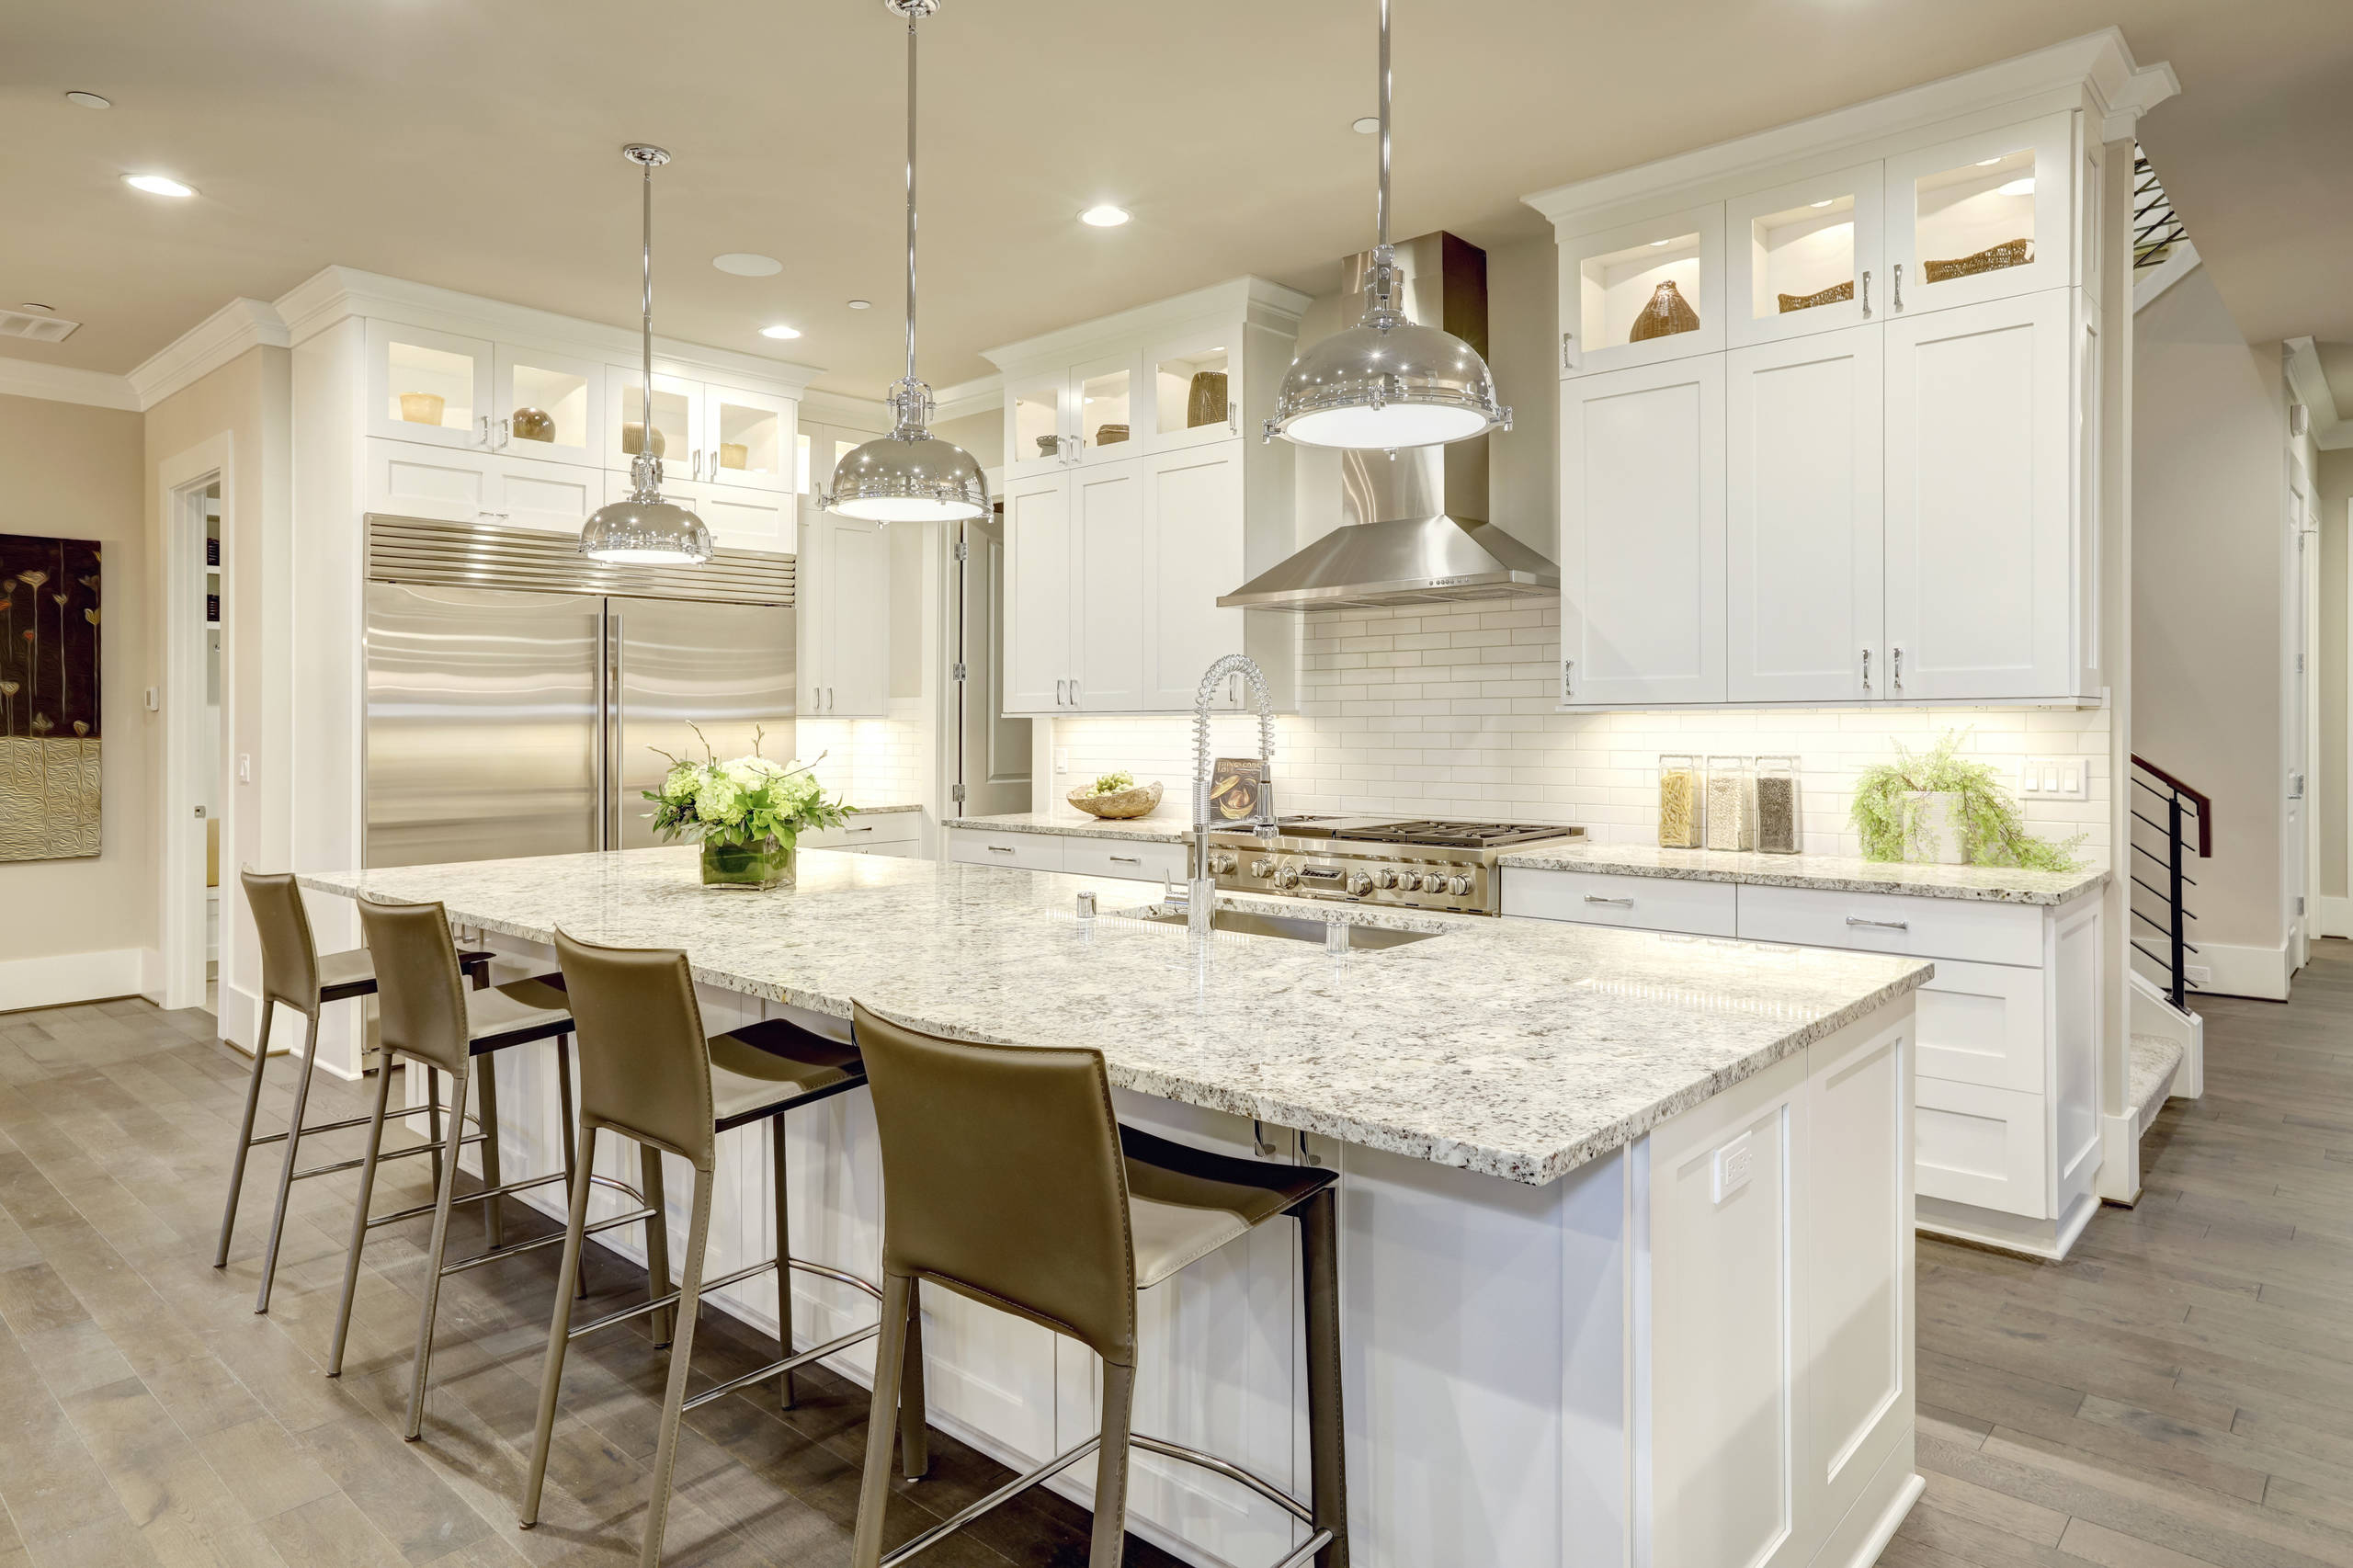 75 Beautiful Kitchen With Granite Countertops Pictures Ideas December 2020 Houzz